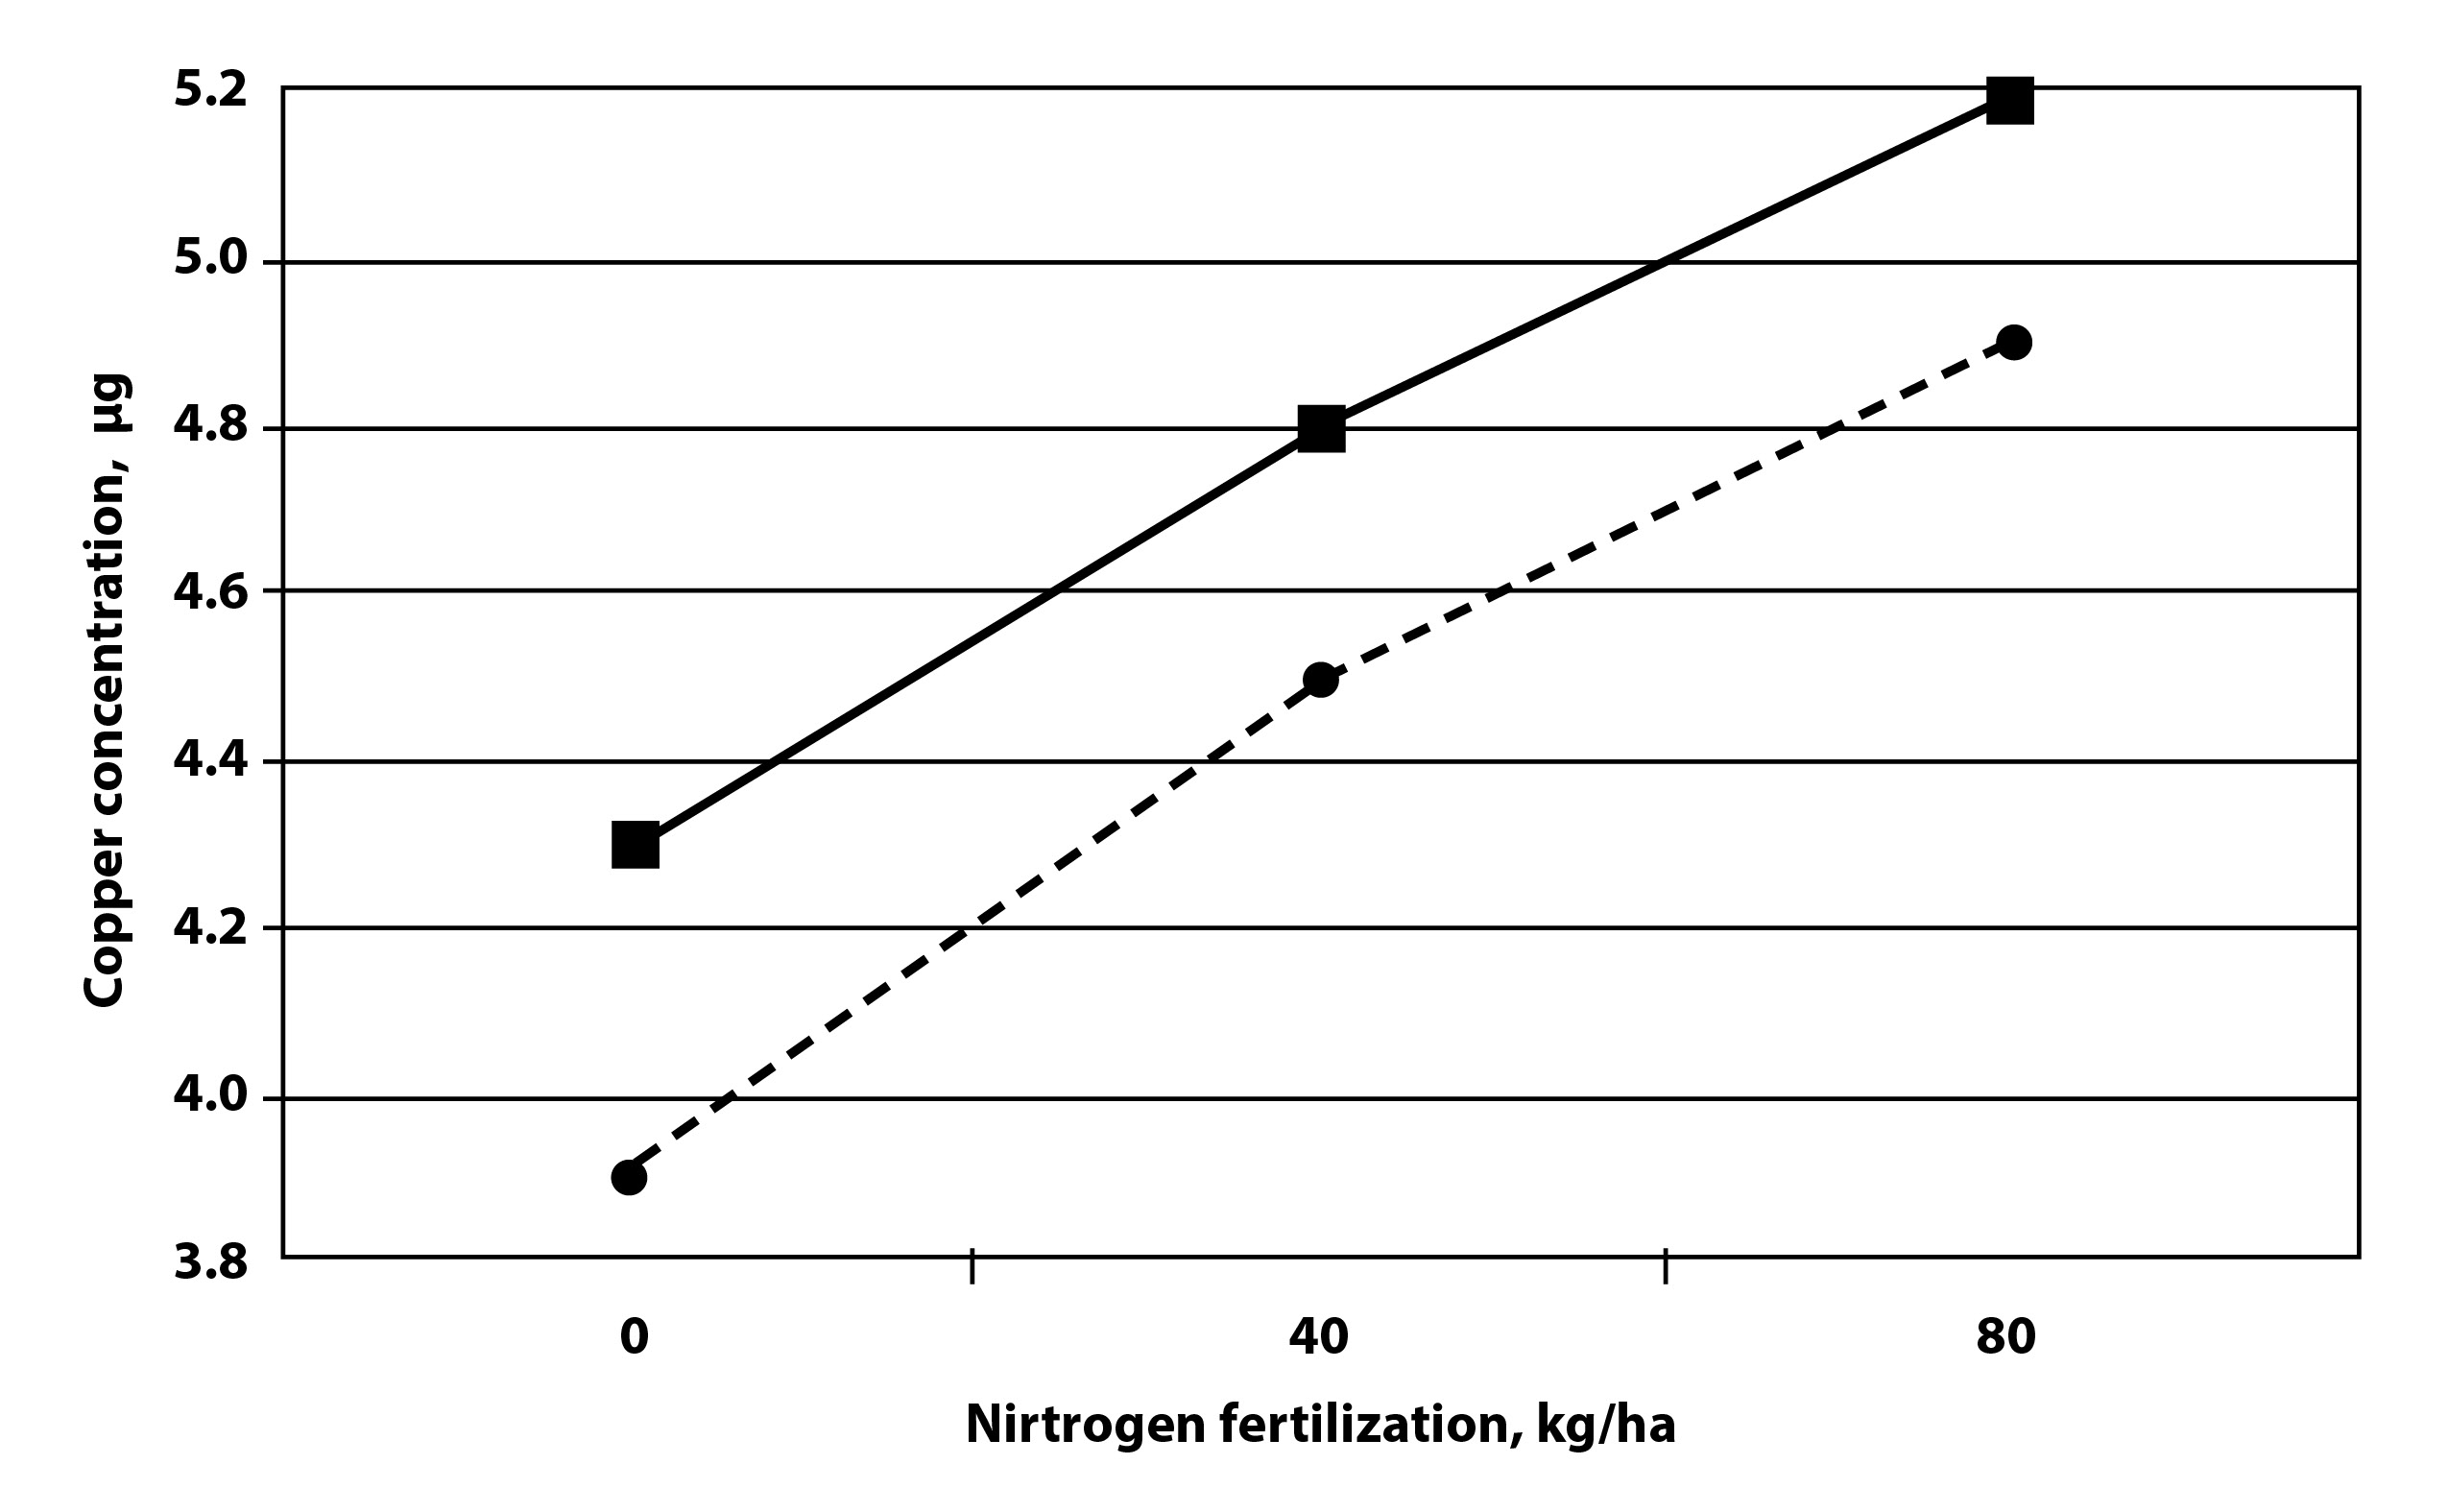 Influence of the endophyte Neotyphodium Coenophialum and nitrogen fertilization on copper concentrations in 'Kentucky-31' tall fescue grown in field studies and averaged over two locations in Virginia (SE = .18; n = 8  for  each  data  point). Dashed line, E+  = endophyte-infected; solid line, E− = endophyte-free.